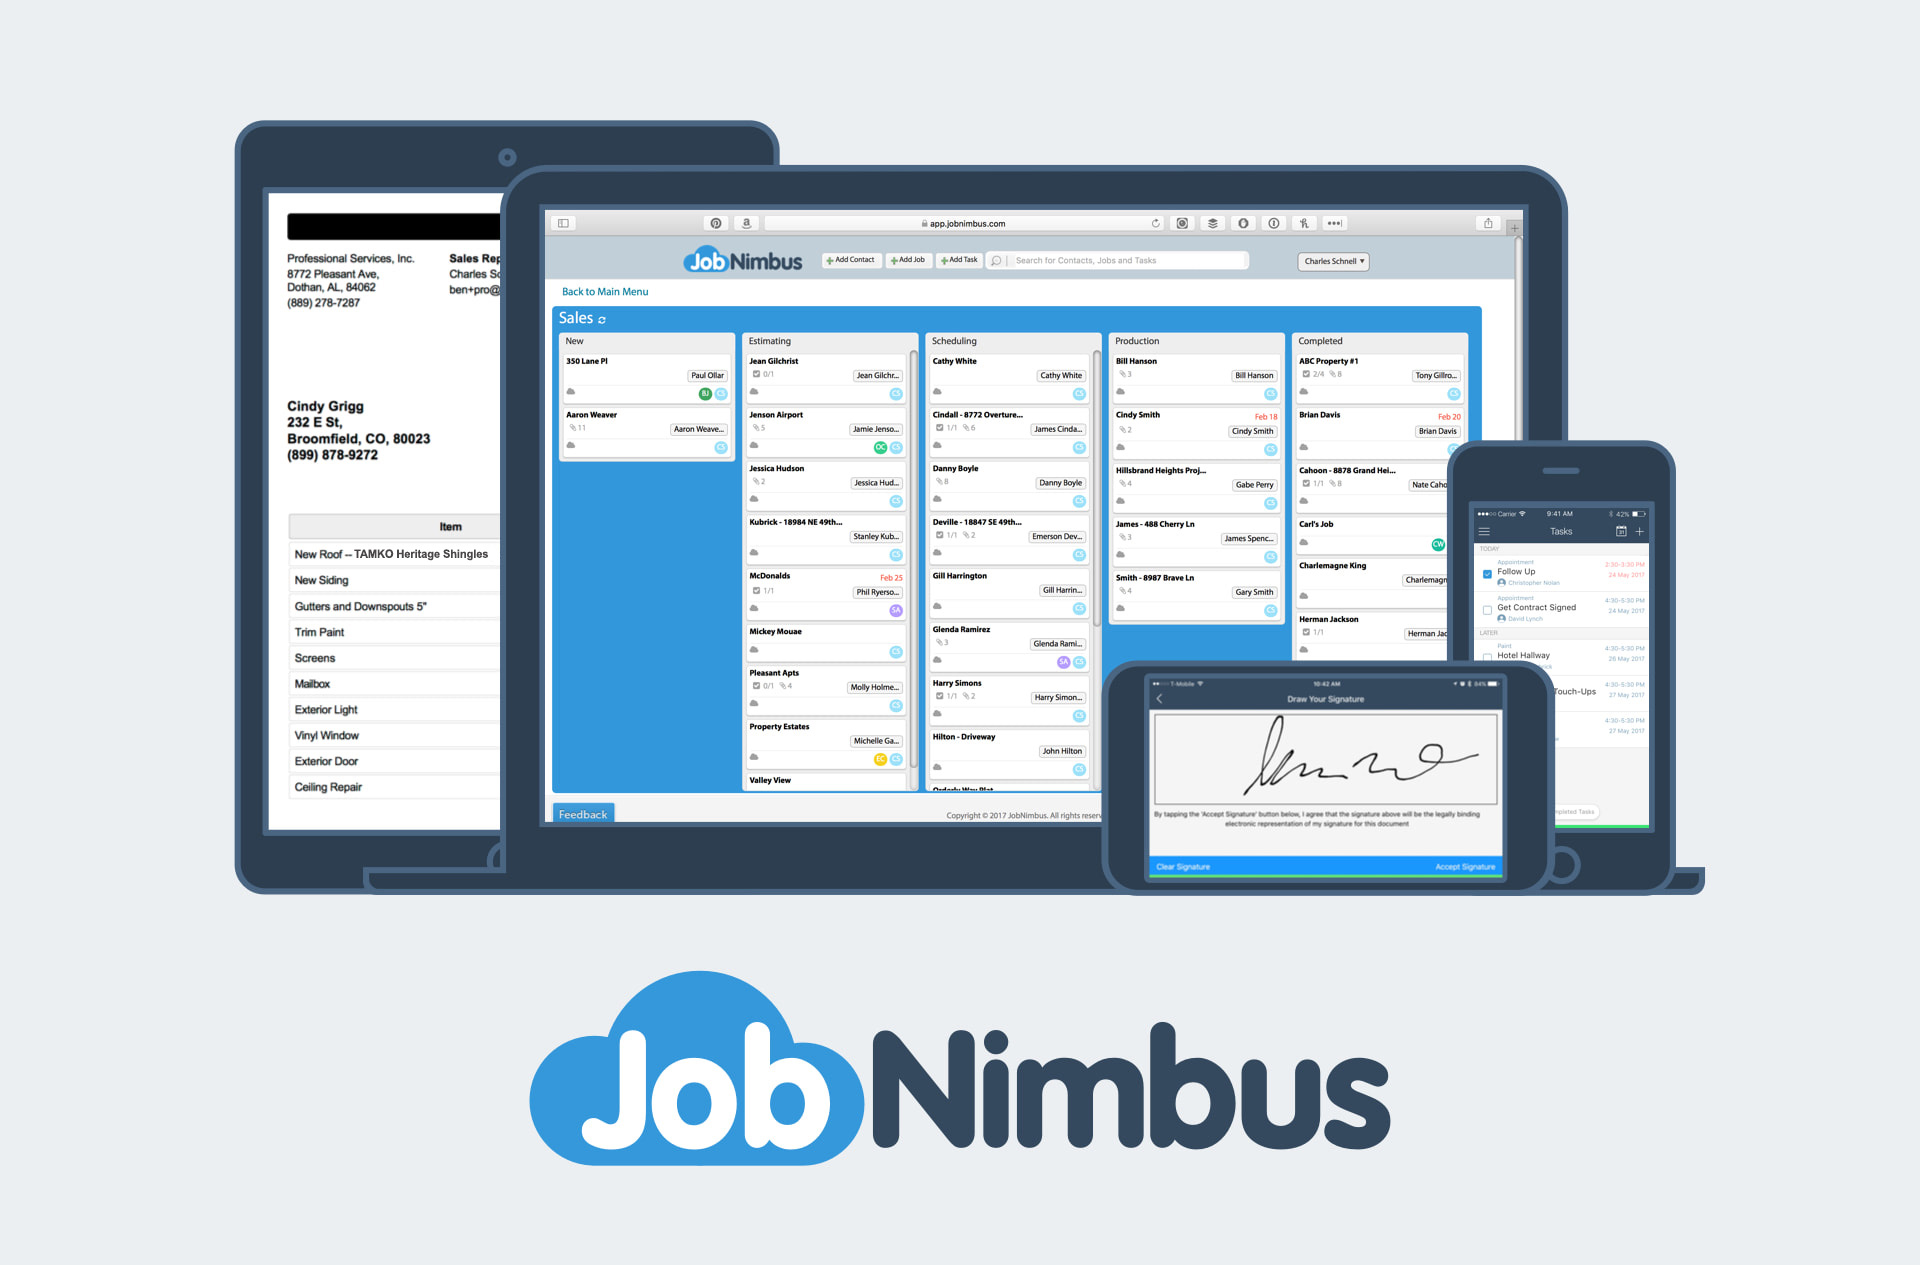 JobNimbus devices